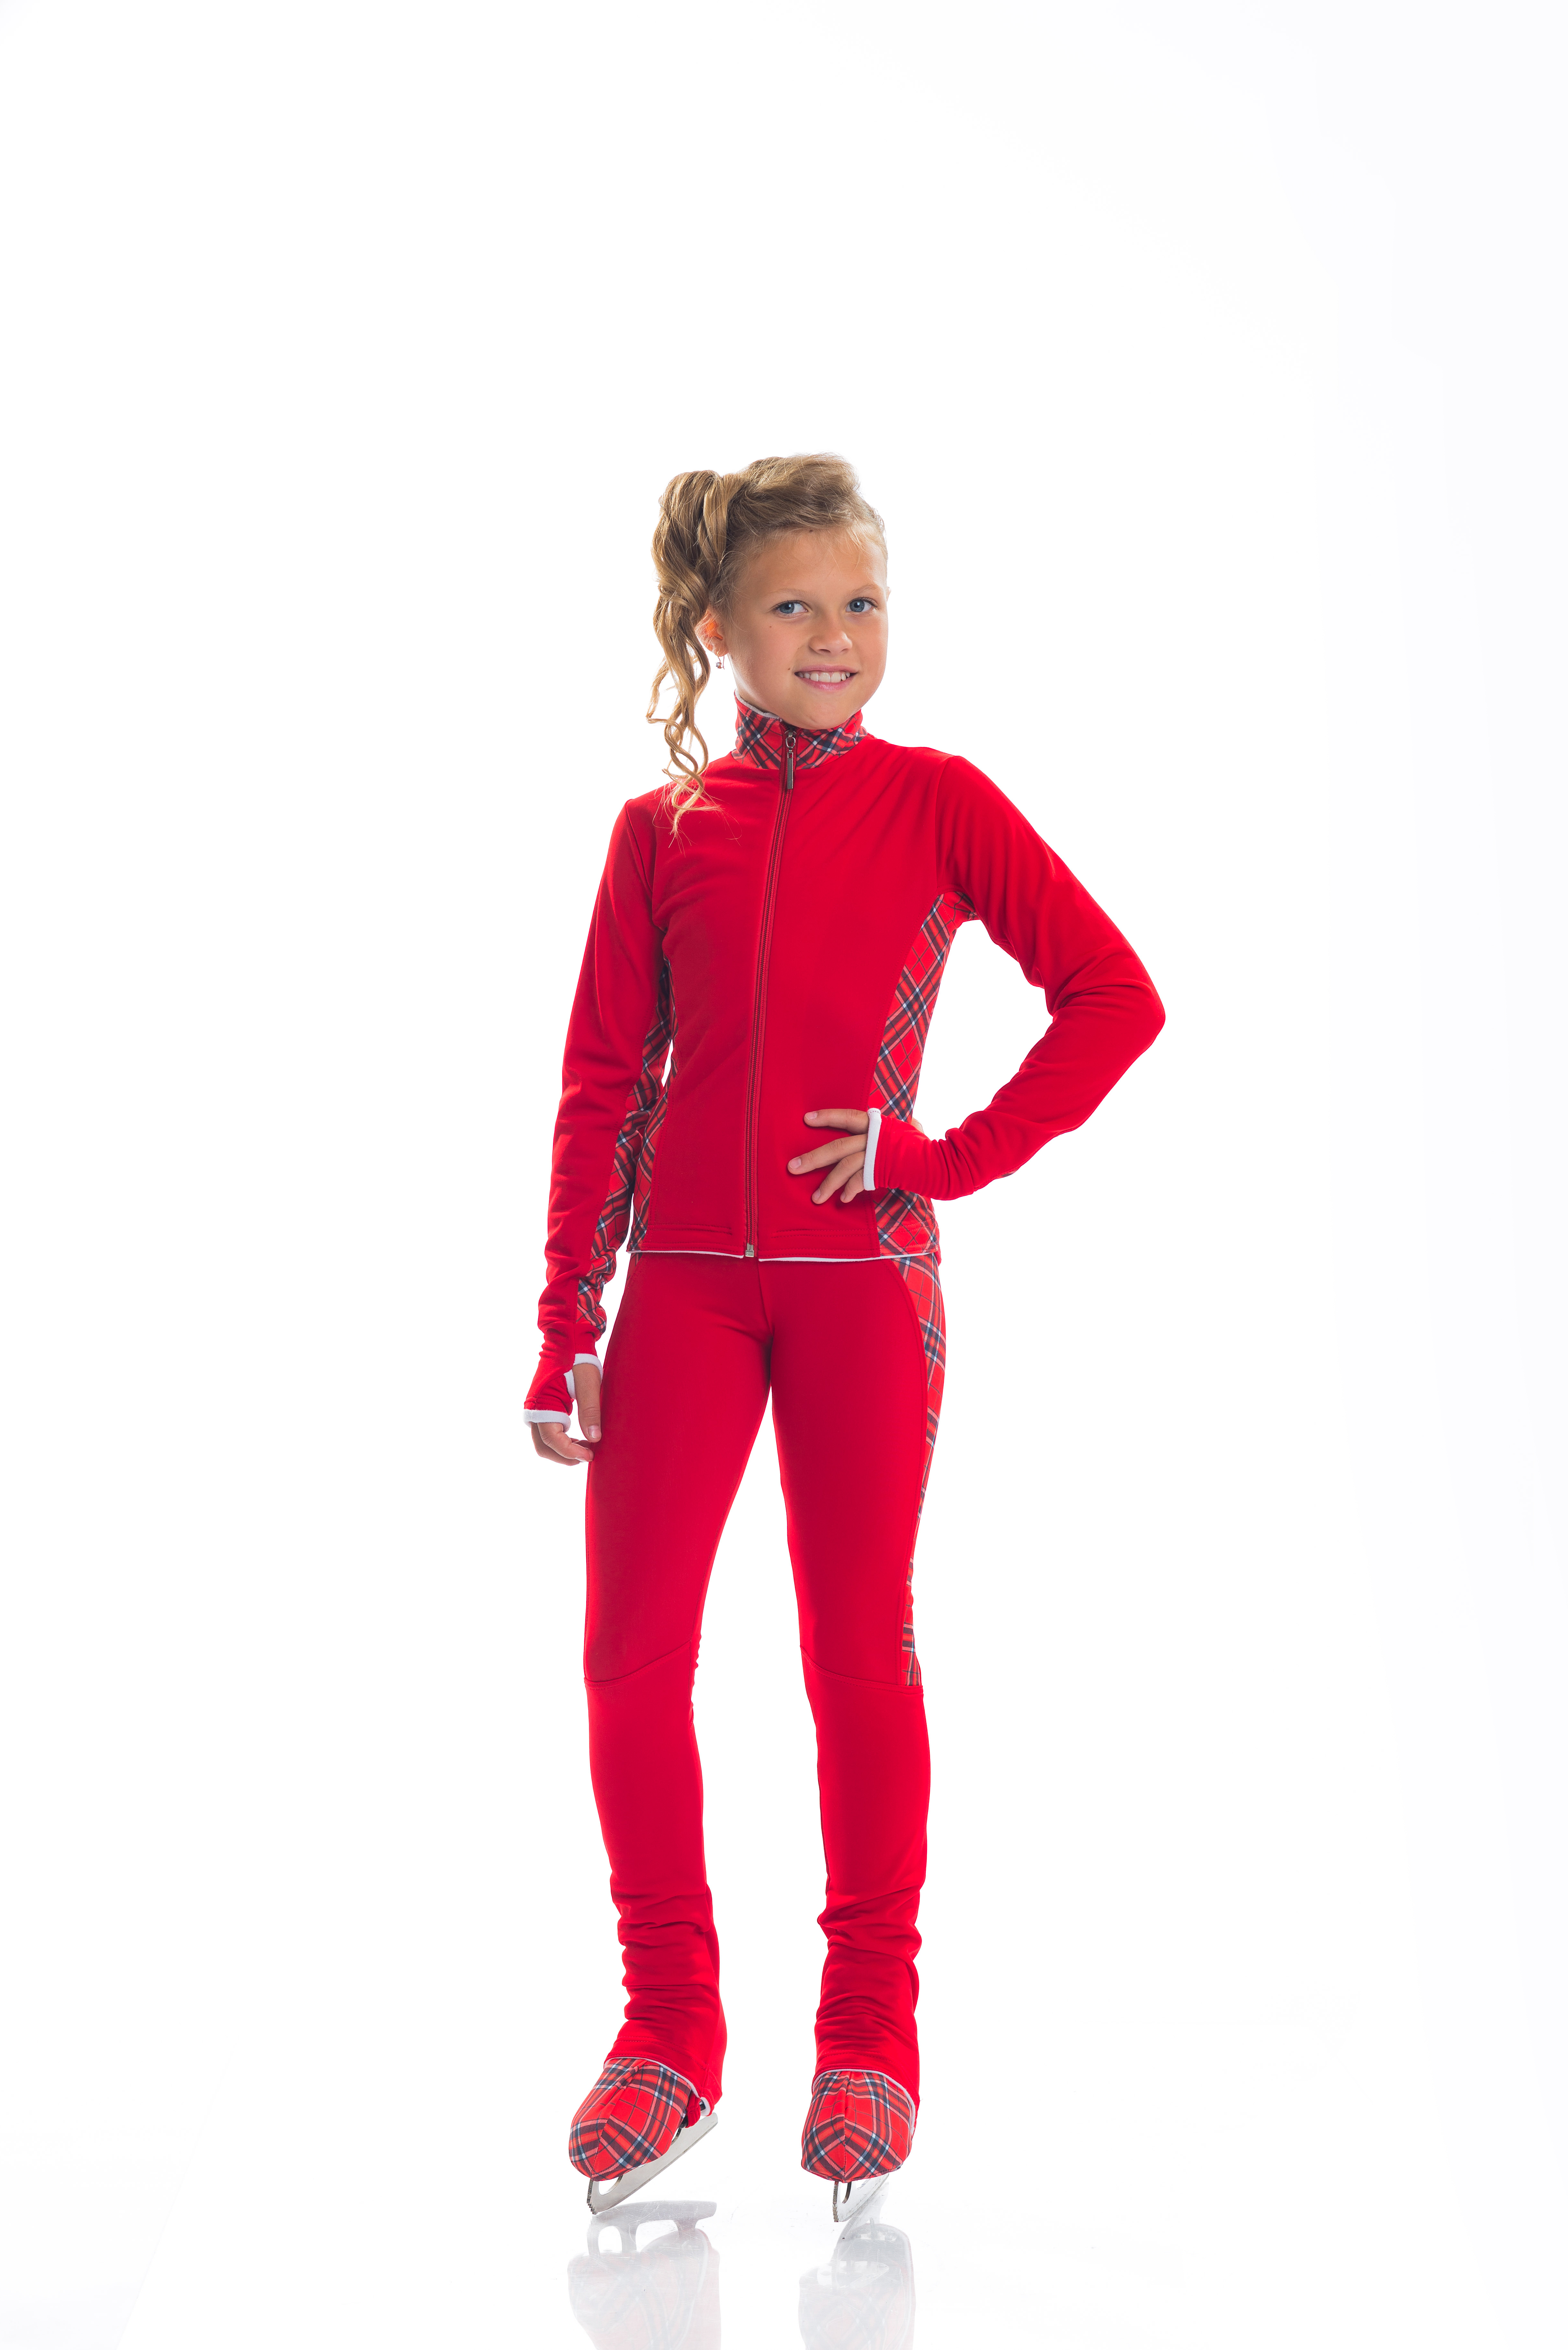 CHILDREN 'S SWEAT THERMAL SUIT FOR FIGURE SKATING FOR GIRLS,